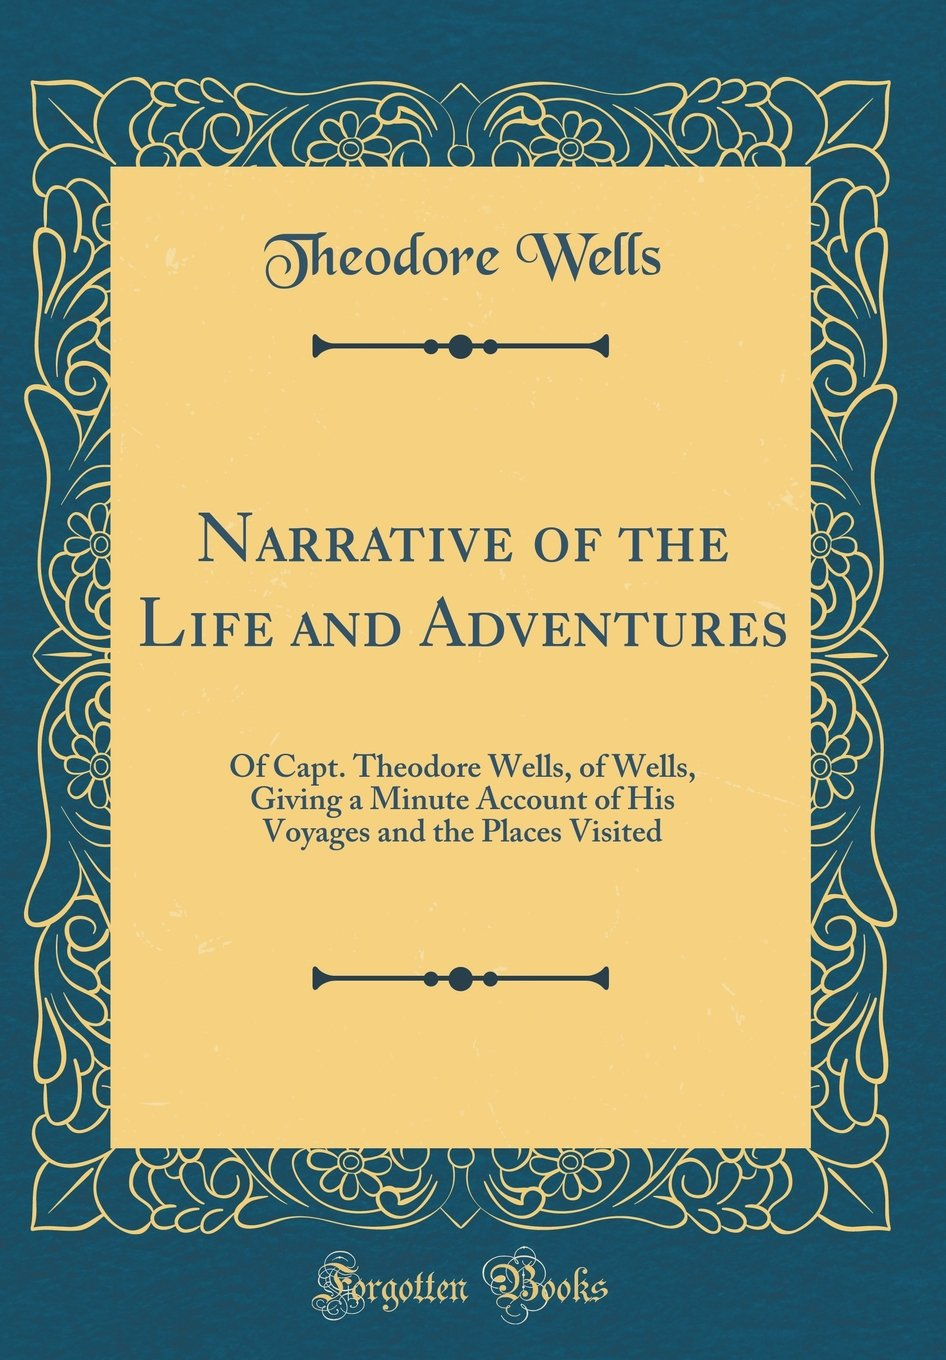 Download Narrative of the Life and Adventures: Of Capt. Theodore Wells, of Wells, Giving a Minute Account of His Voyages and the Places Visited (Classic Reprint) ebook